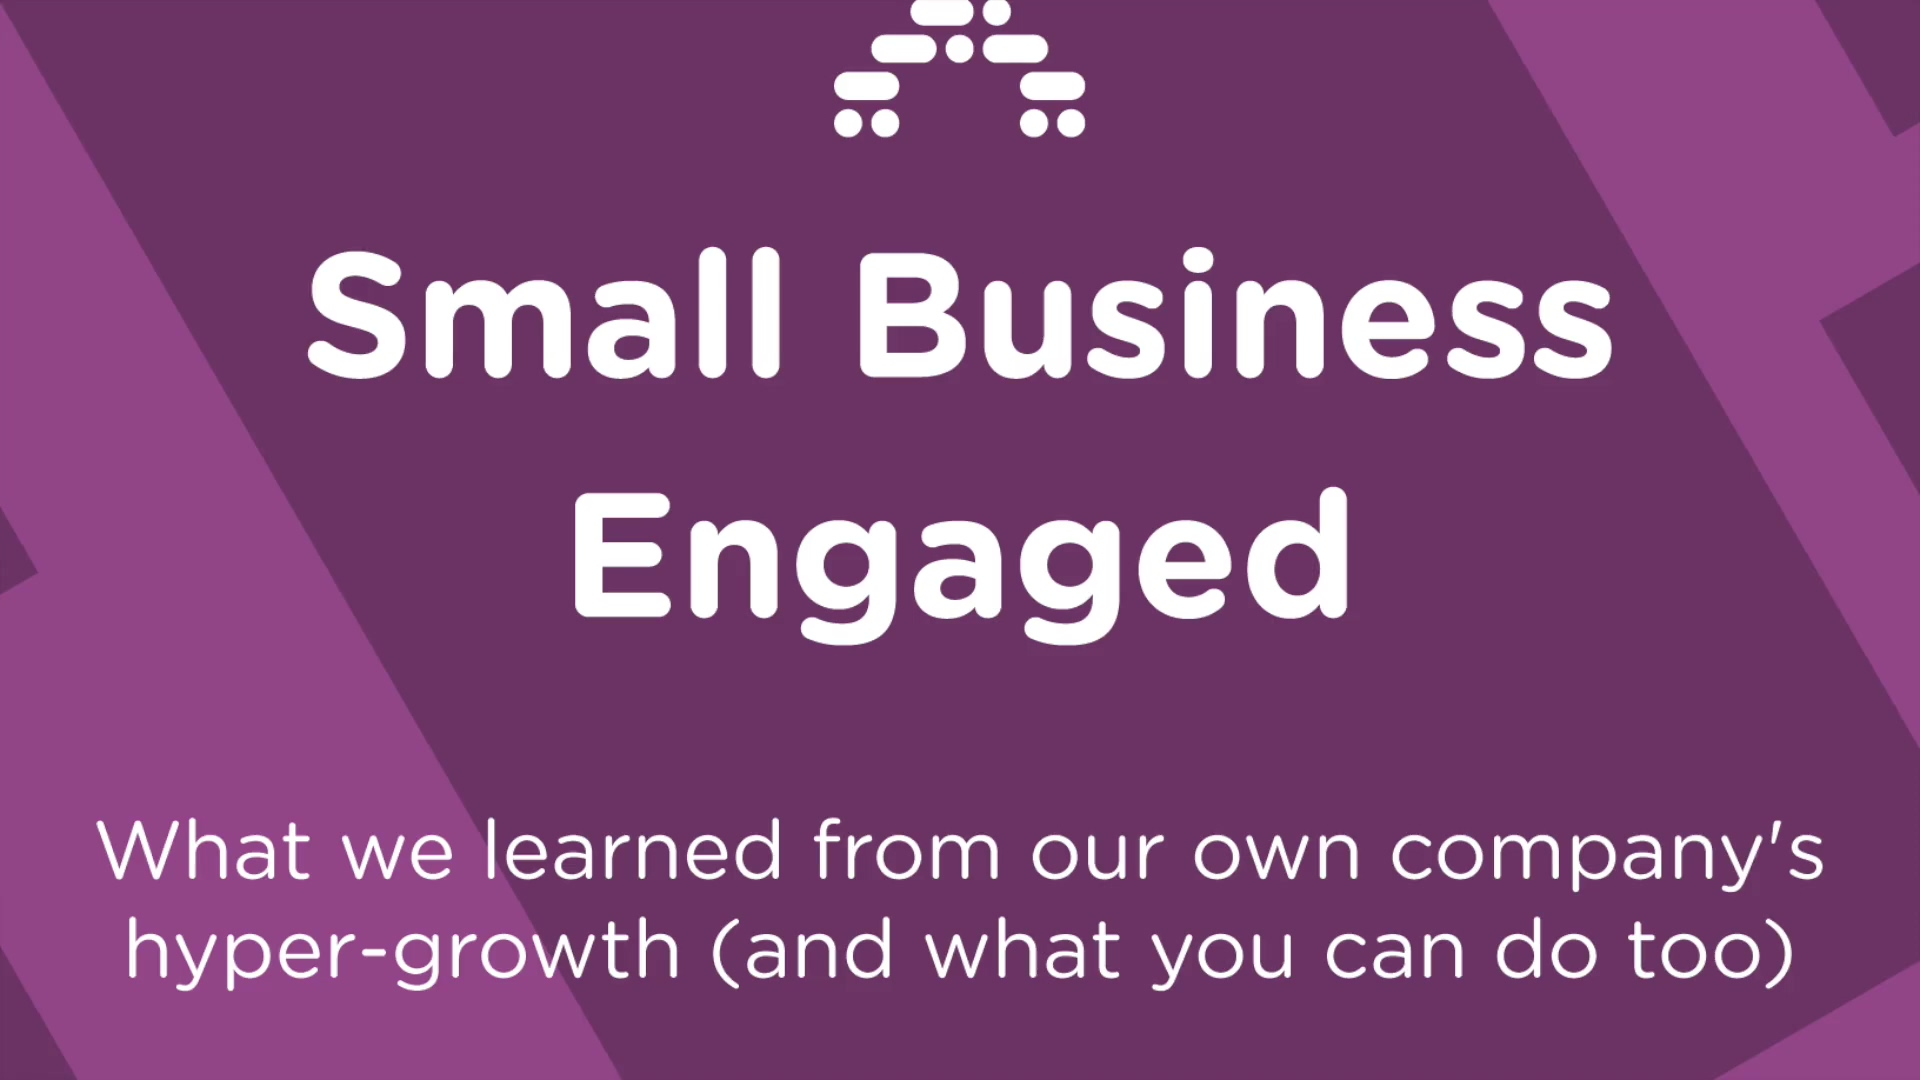 Small Business Engaged UK - Episode 4 - What we learned from our own companys hyper-growth (and what